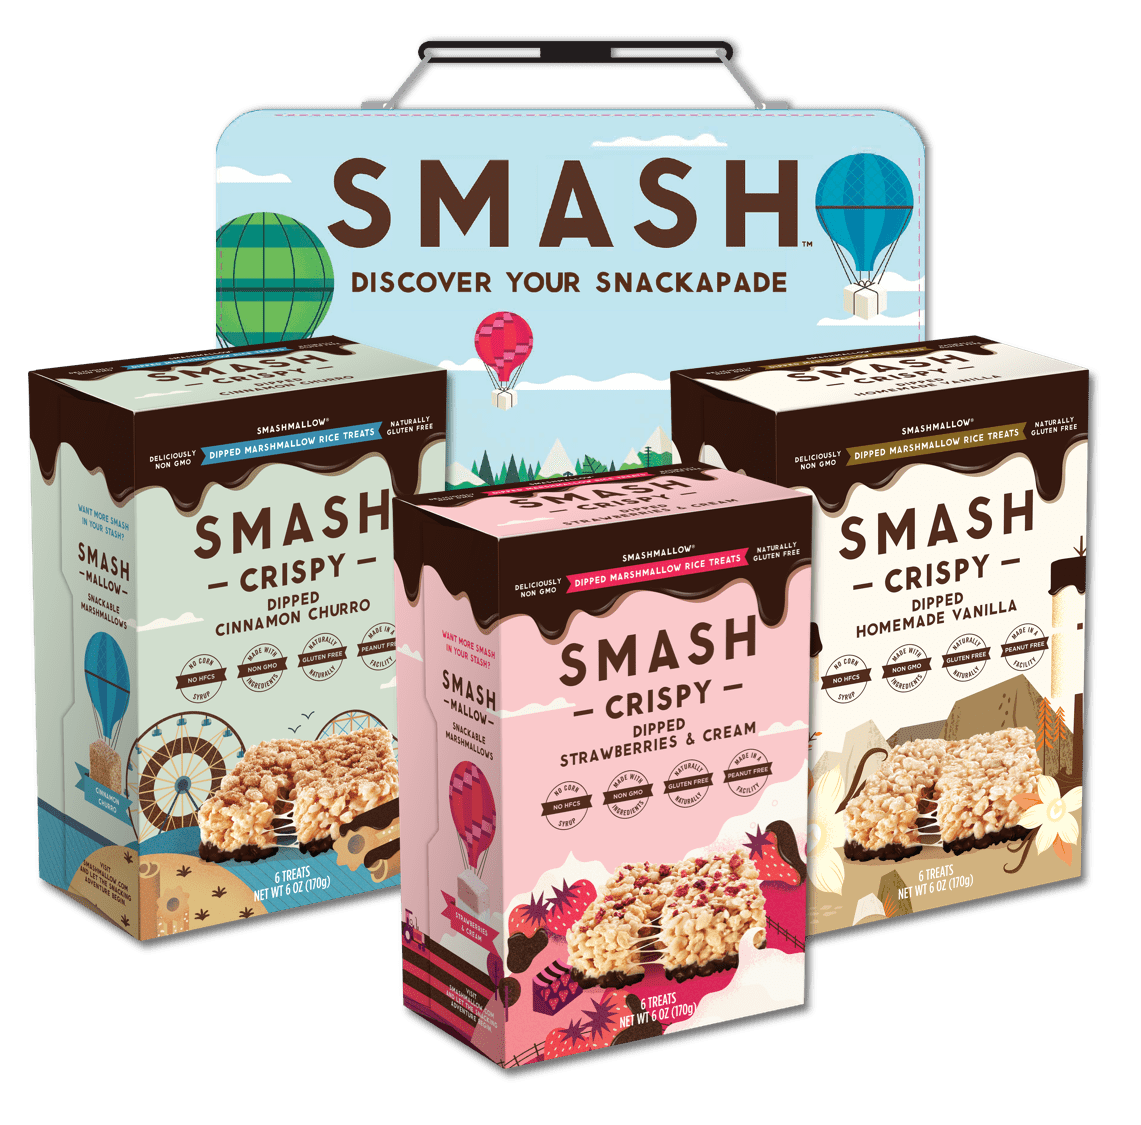 Smashcrispy Dipped Lunchbox Sampler